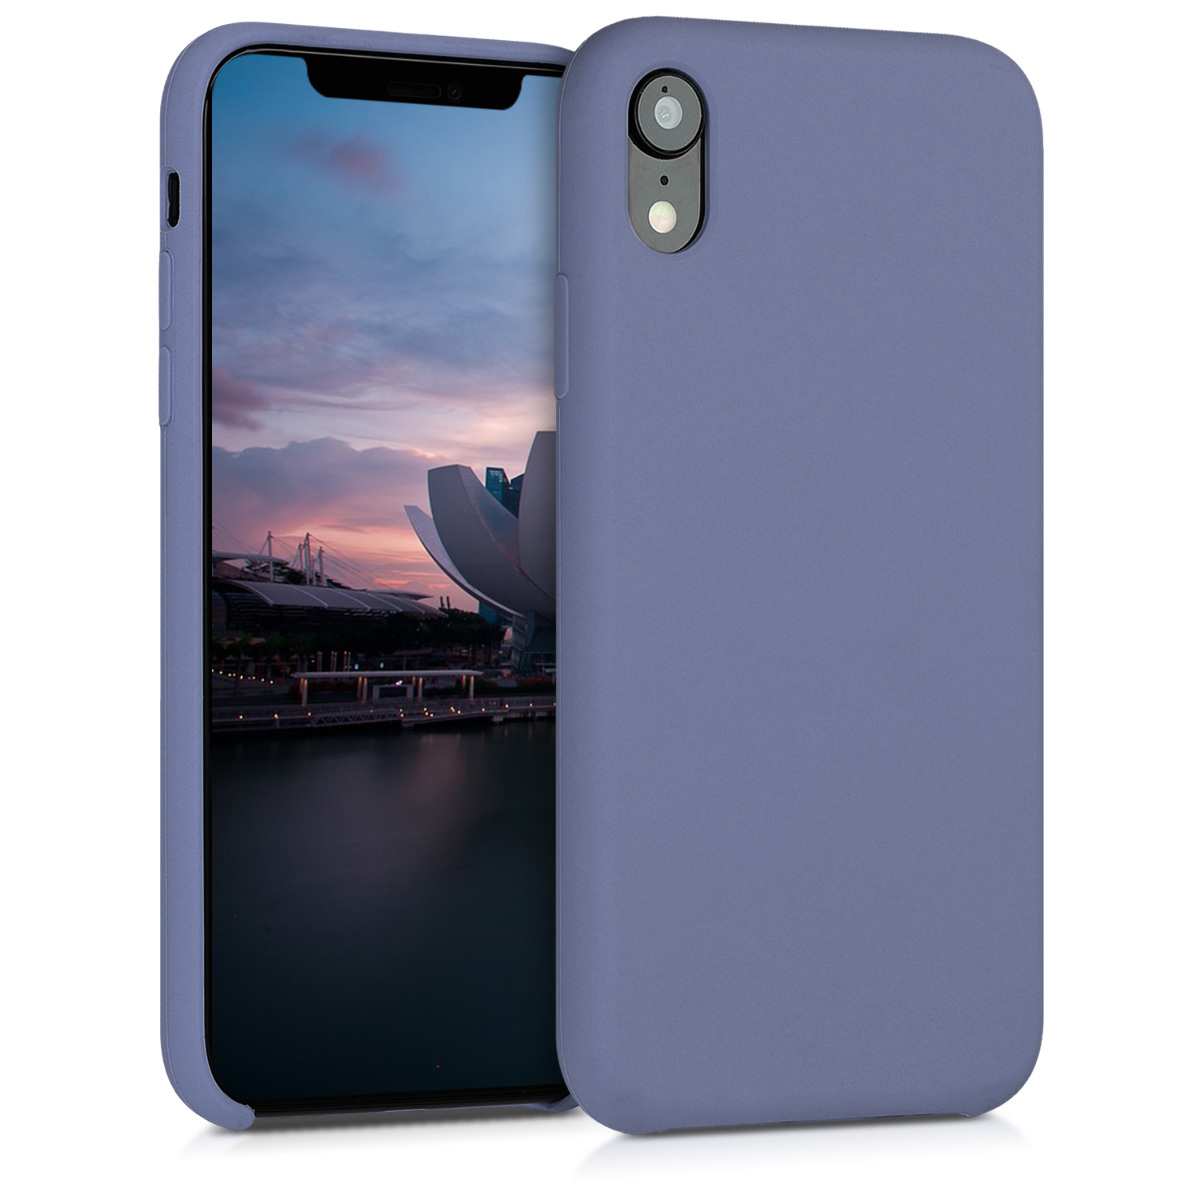 KW TPU Θήκη Σιλικόνης Apple iPhone XR - Lavender Grey (45910.130)